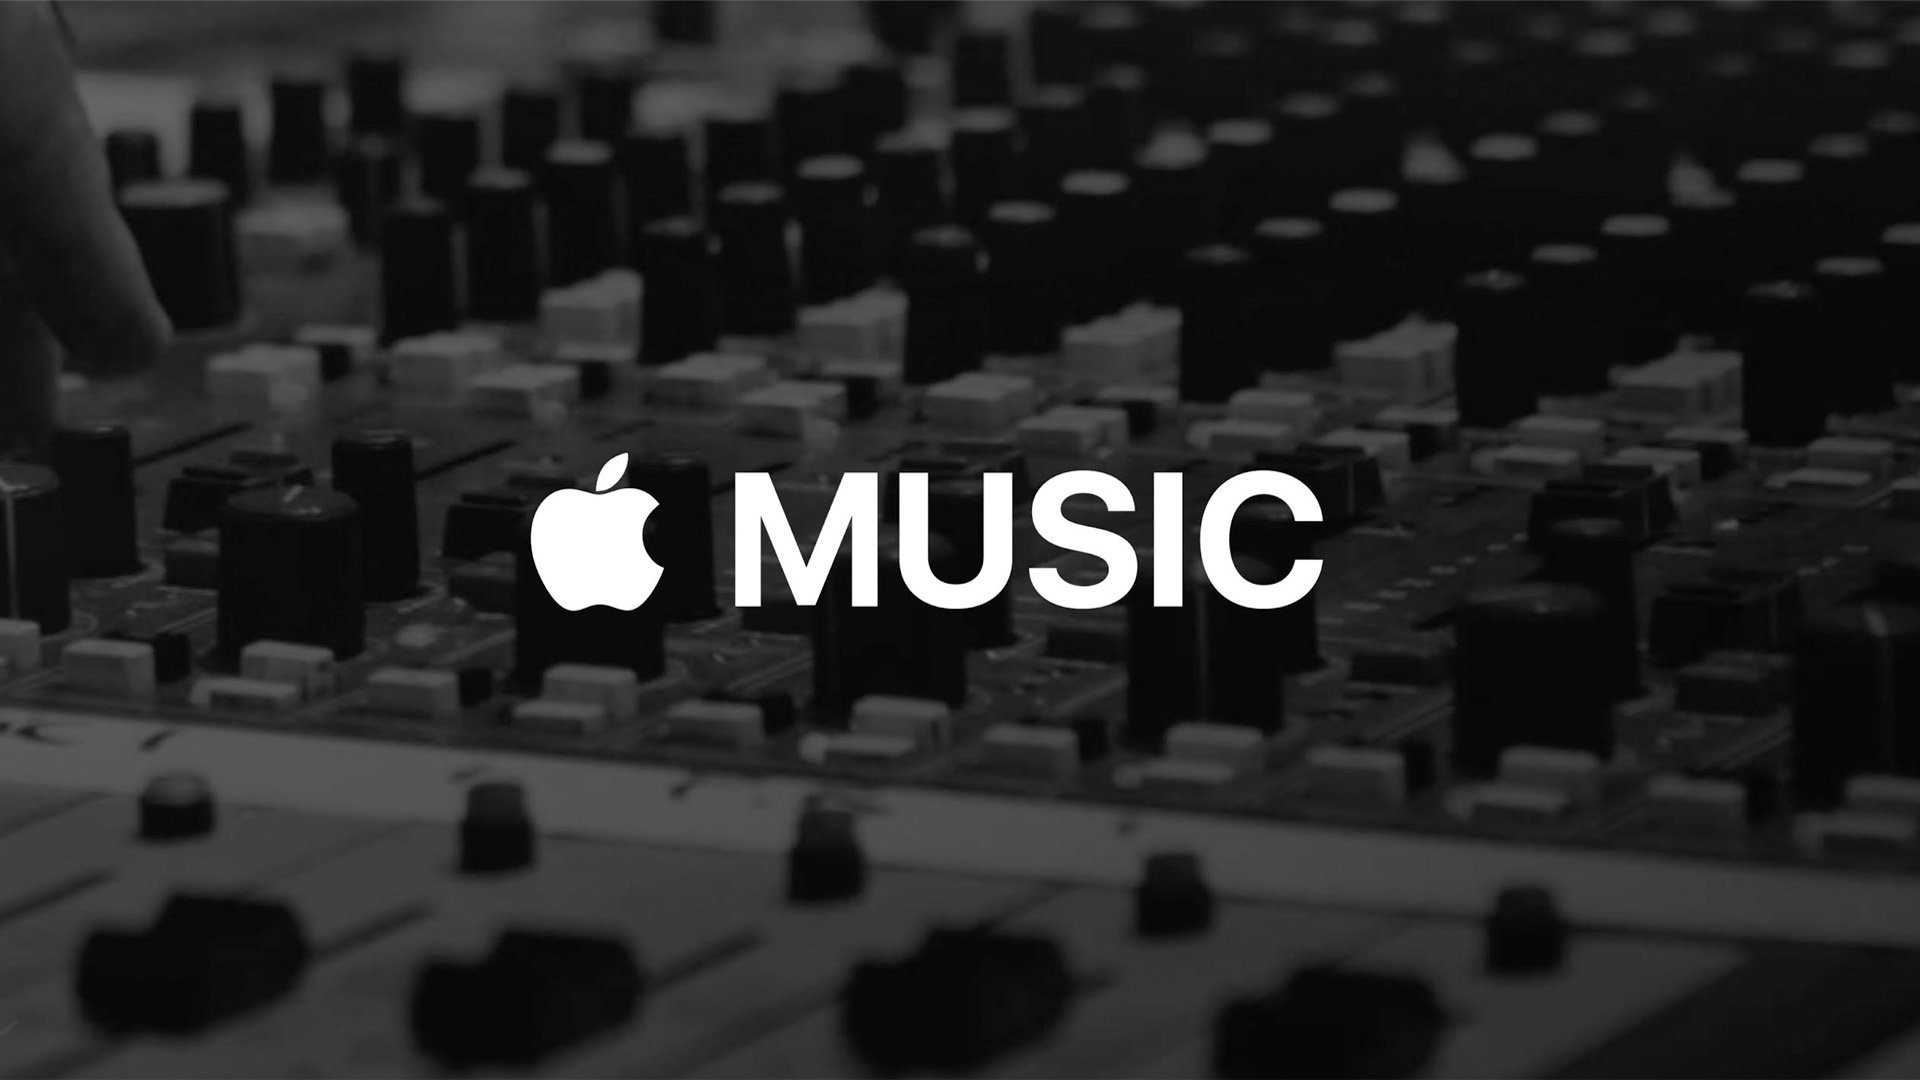 Apple Music Wallpapers (63 Wallpapers)